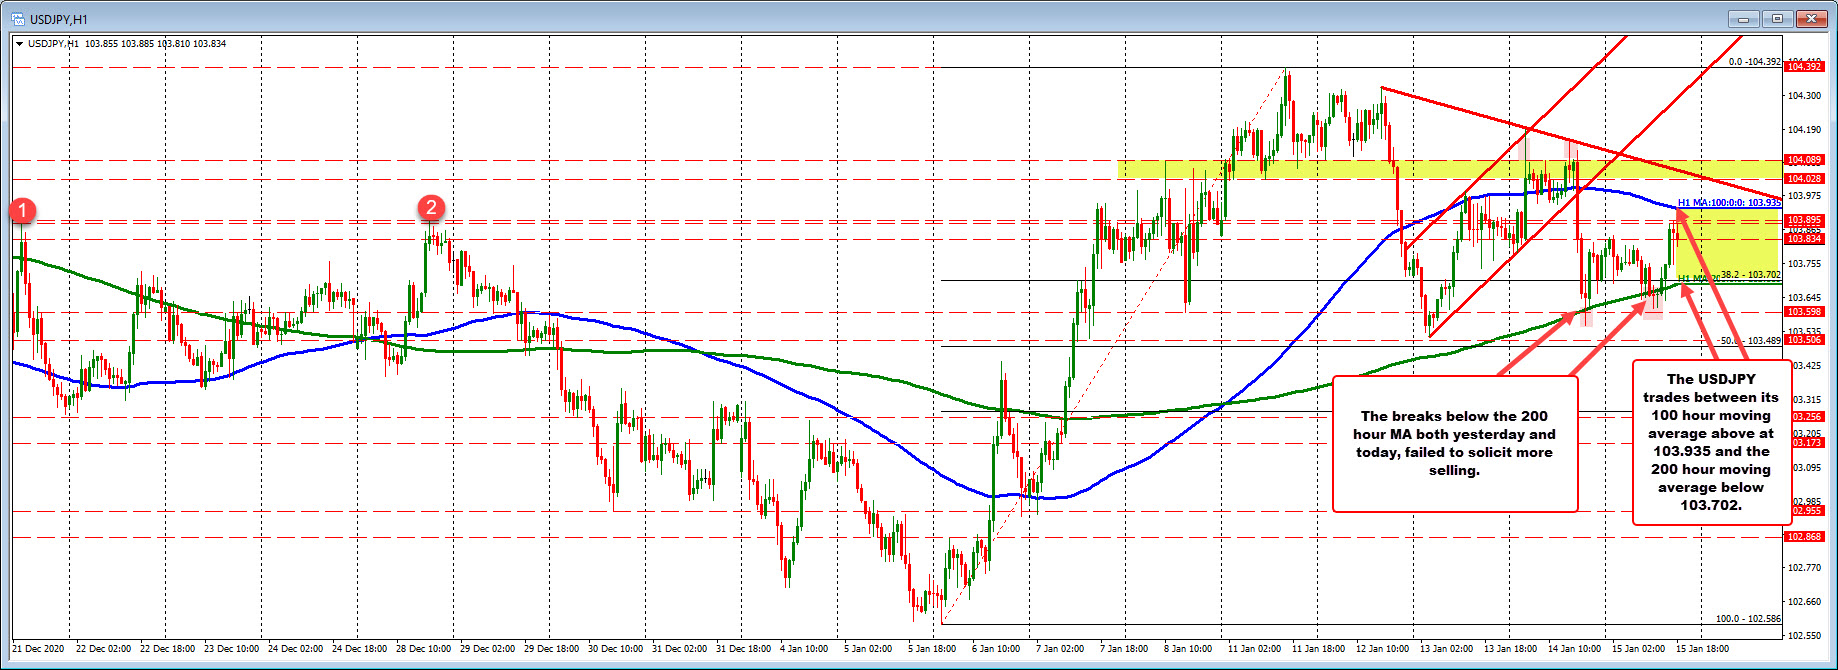 USDJPY 100 hour moving average at 103.935. The 200 hour moving averages at 103.70